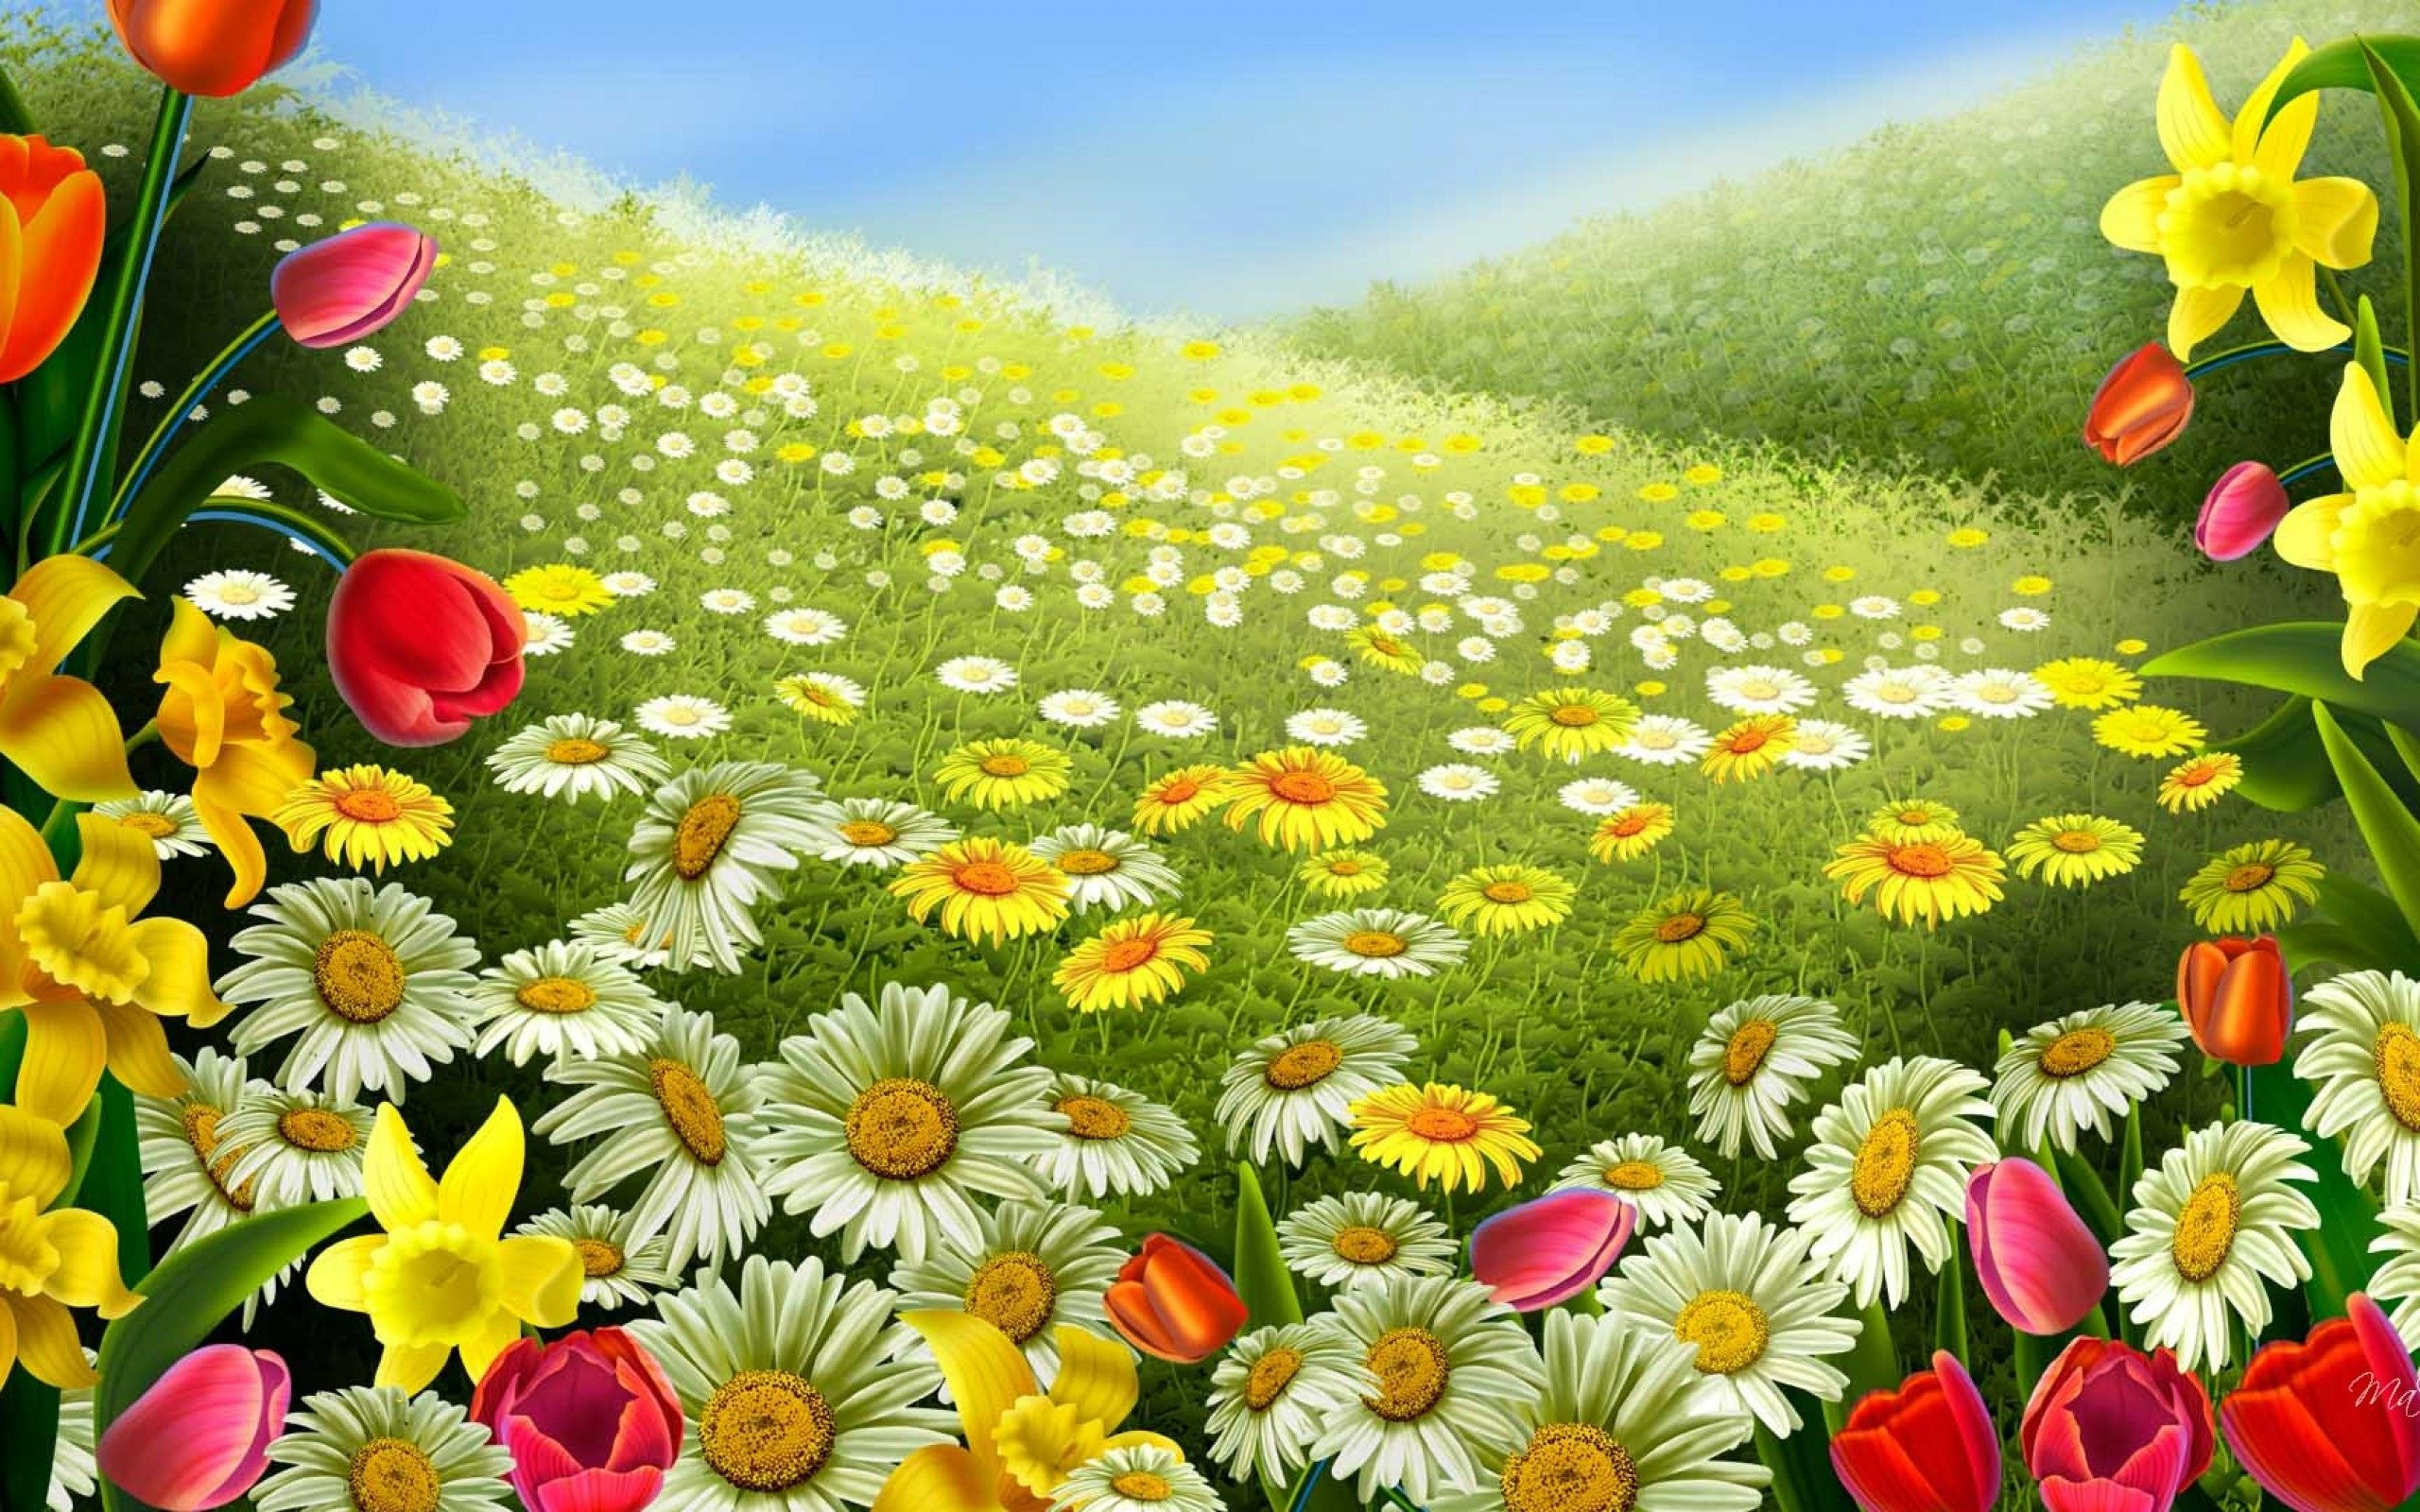 Flower Garden Images Free Flowers Healthy